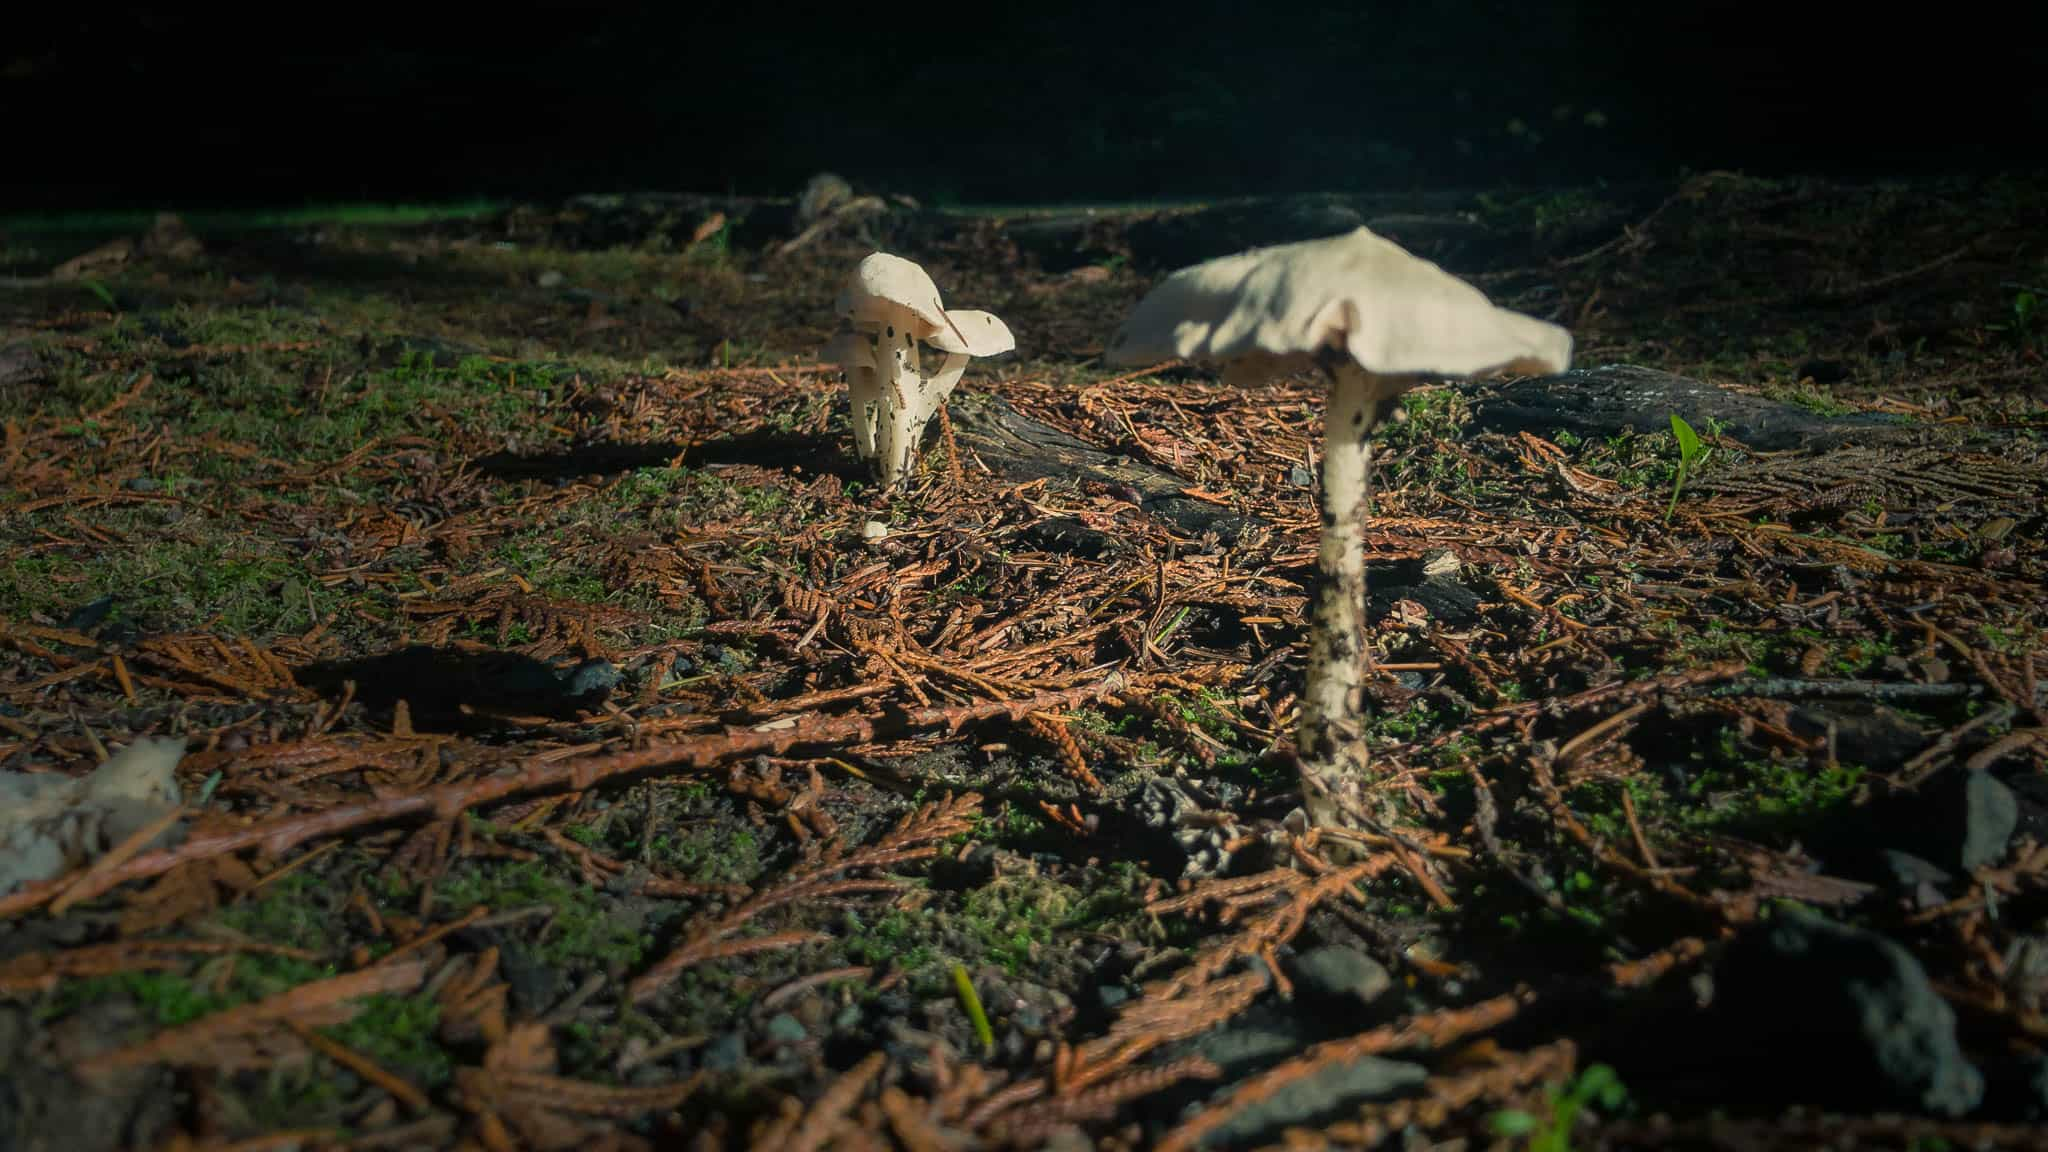 Mushrooms also thriving in the cold damp weather.